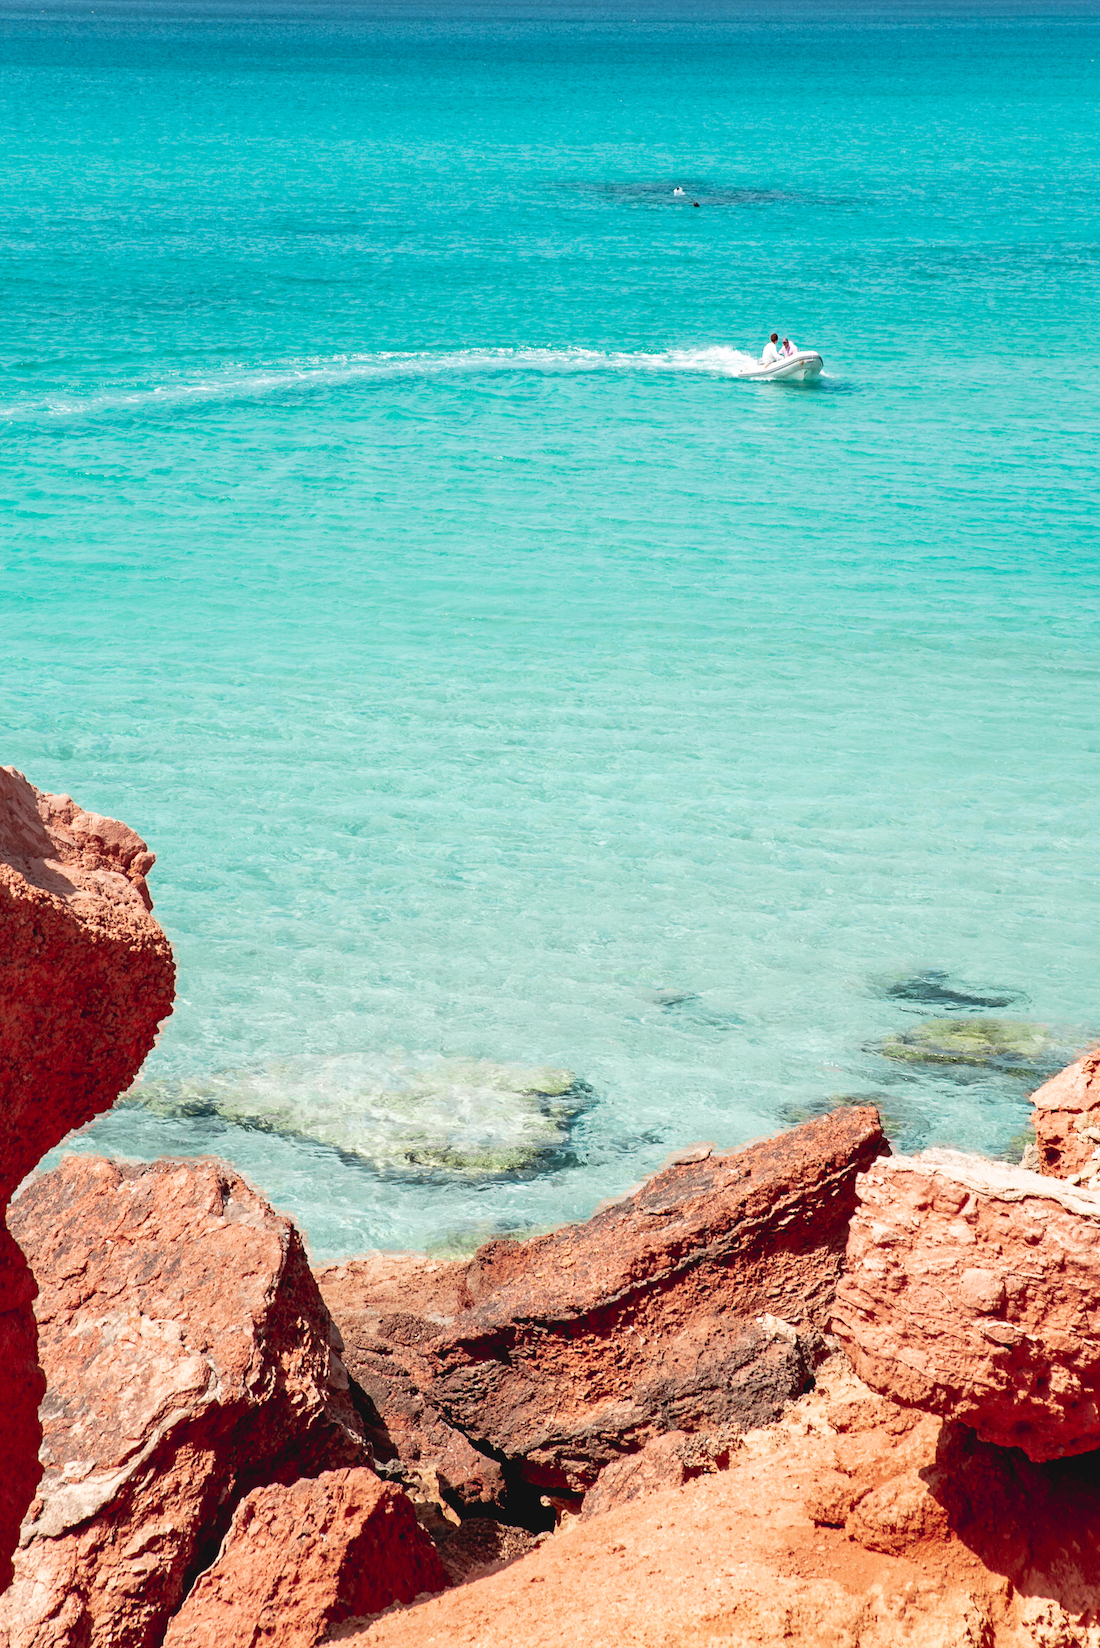 Turquoise waters and Mars-red rocks at Cala Saona, Formentera - Travel Guide by Ben Holbrook